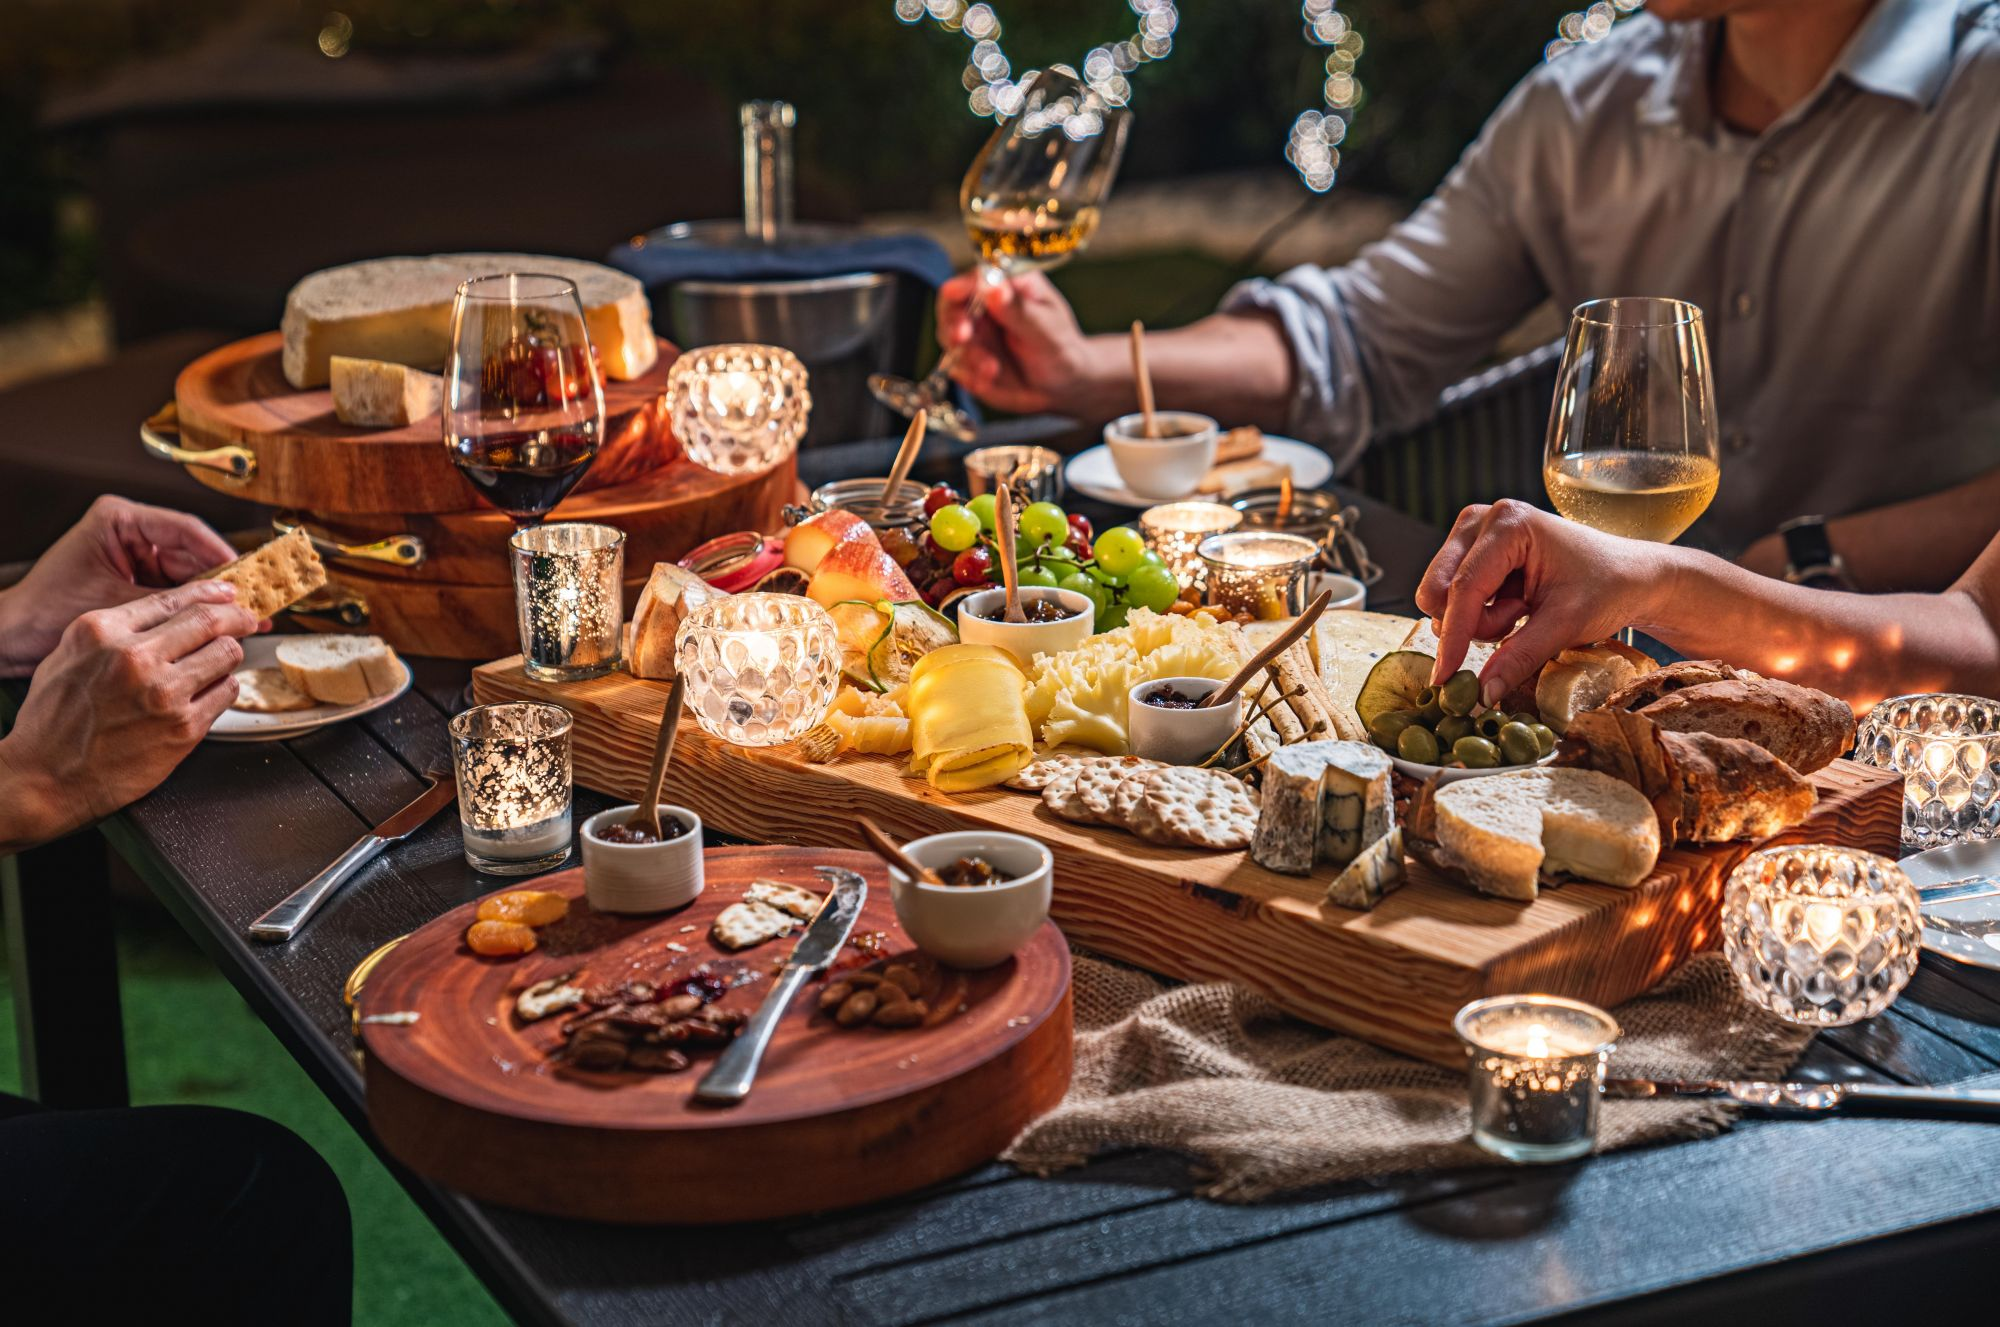 The Upper House's New Pop-Up Is A Cheese and Wine Lover's Dream